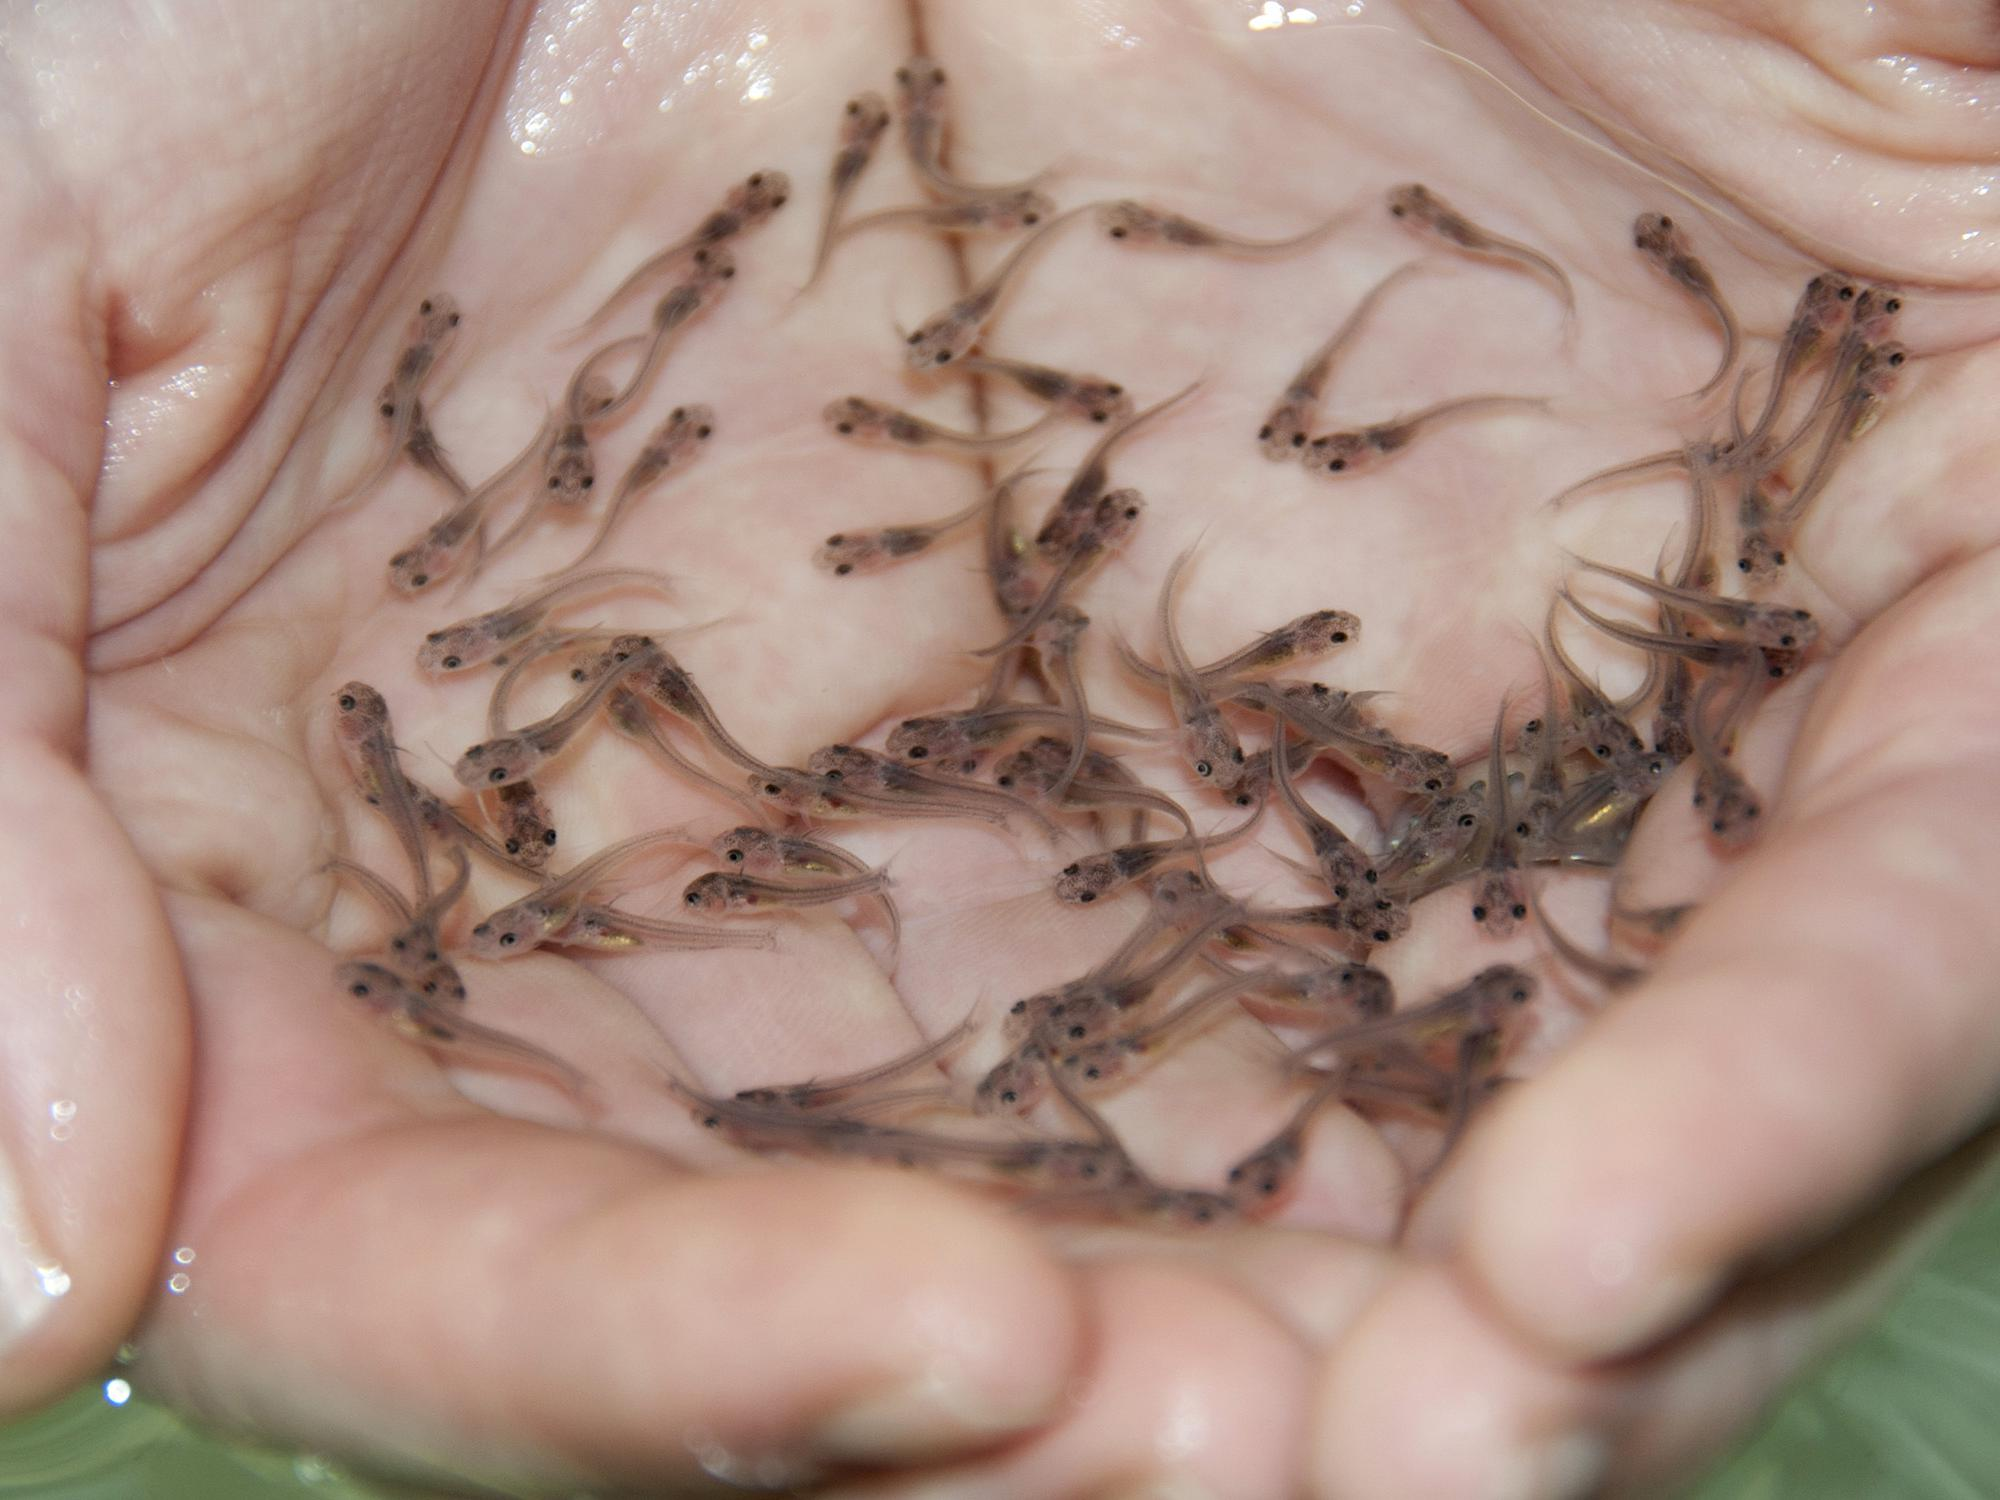 High demand for fingerlings to stock ponds is keeping catfish supply tight and resulting in profits for Mississippi's catfish industry. (File photo by MSU Extension Service/Kat Lawrence)